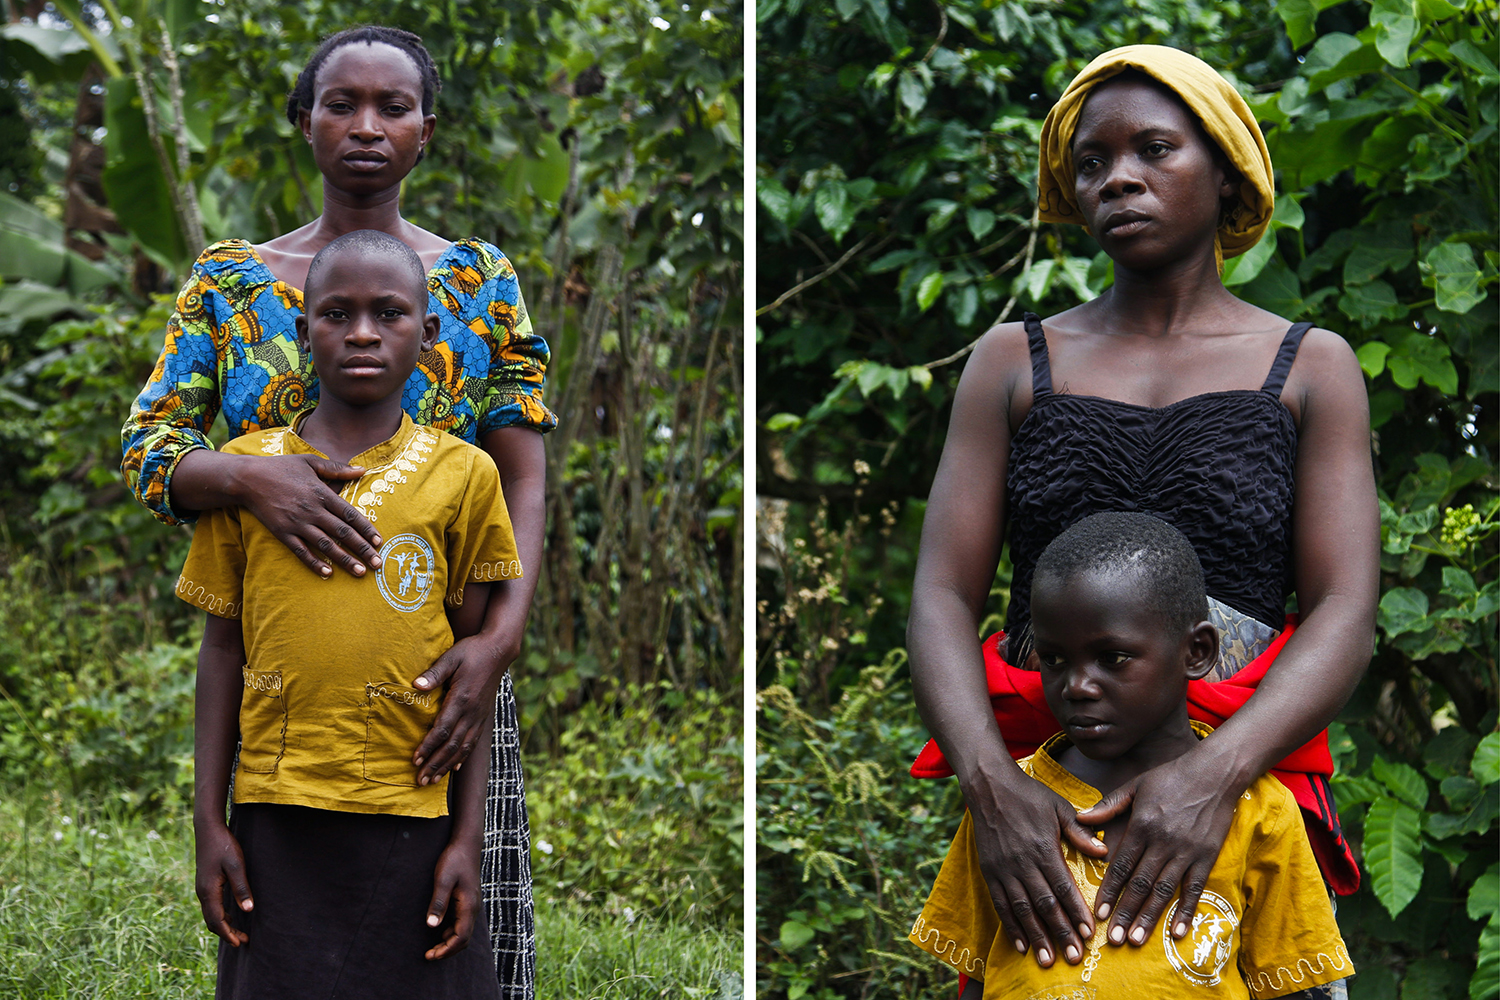 Left: Martha Kabugho with her adopted daughter, Bira, on Feb. 6, 2020. The girl's father was fatally shot by rangers in Queen Elizabeth National Park. Right: Doreen Masika with her adopted son, Cedric, on Feb. 6, 2020. The boy's father was killed by a buffalo while hunting inside the park.